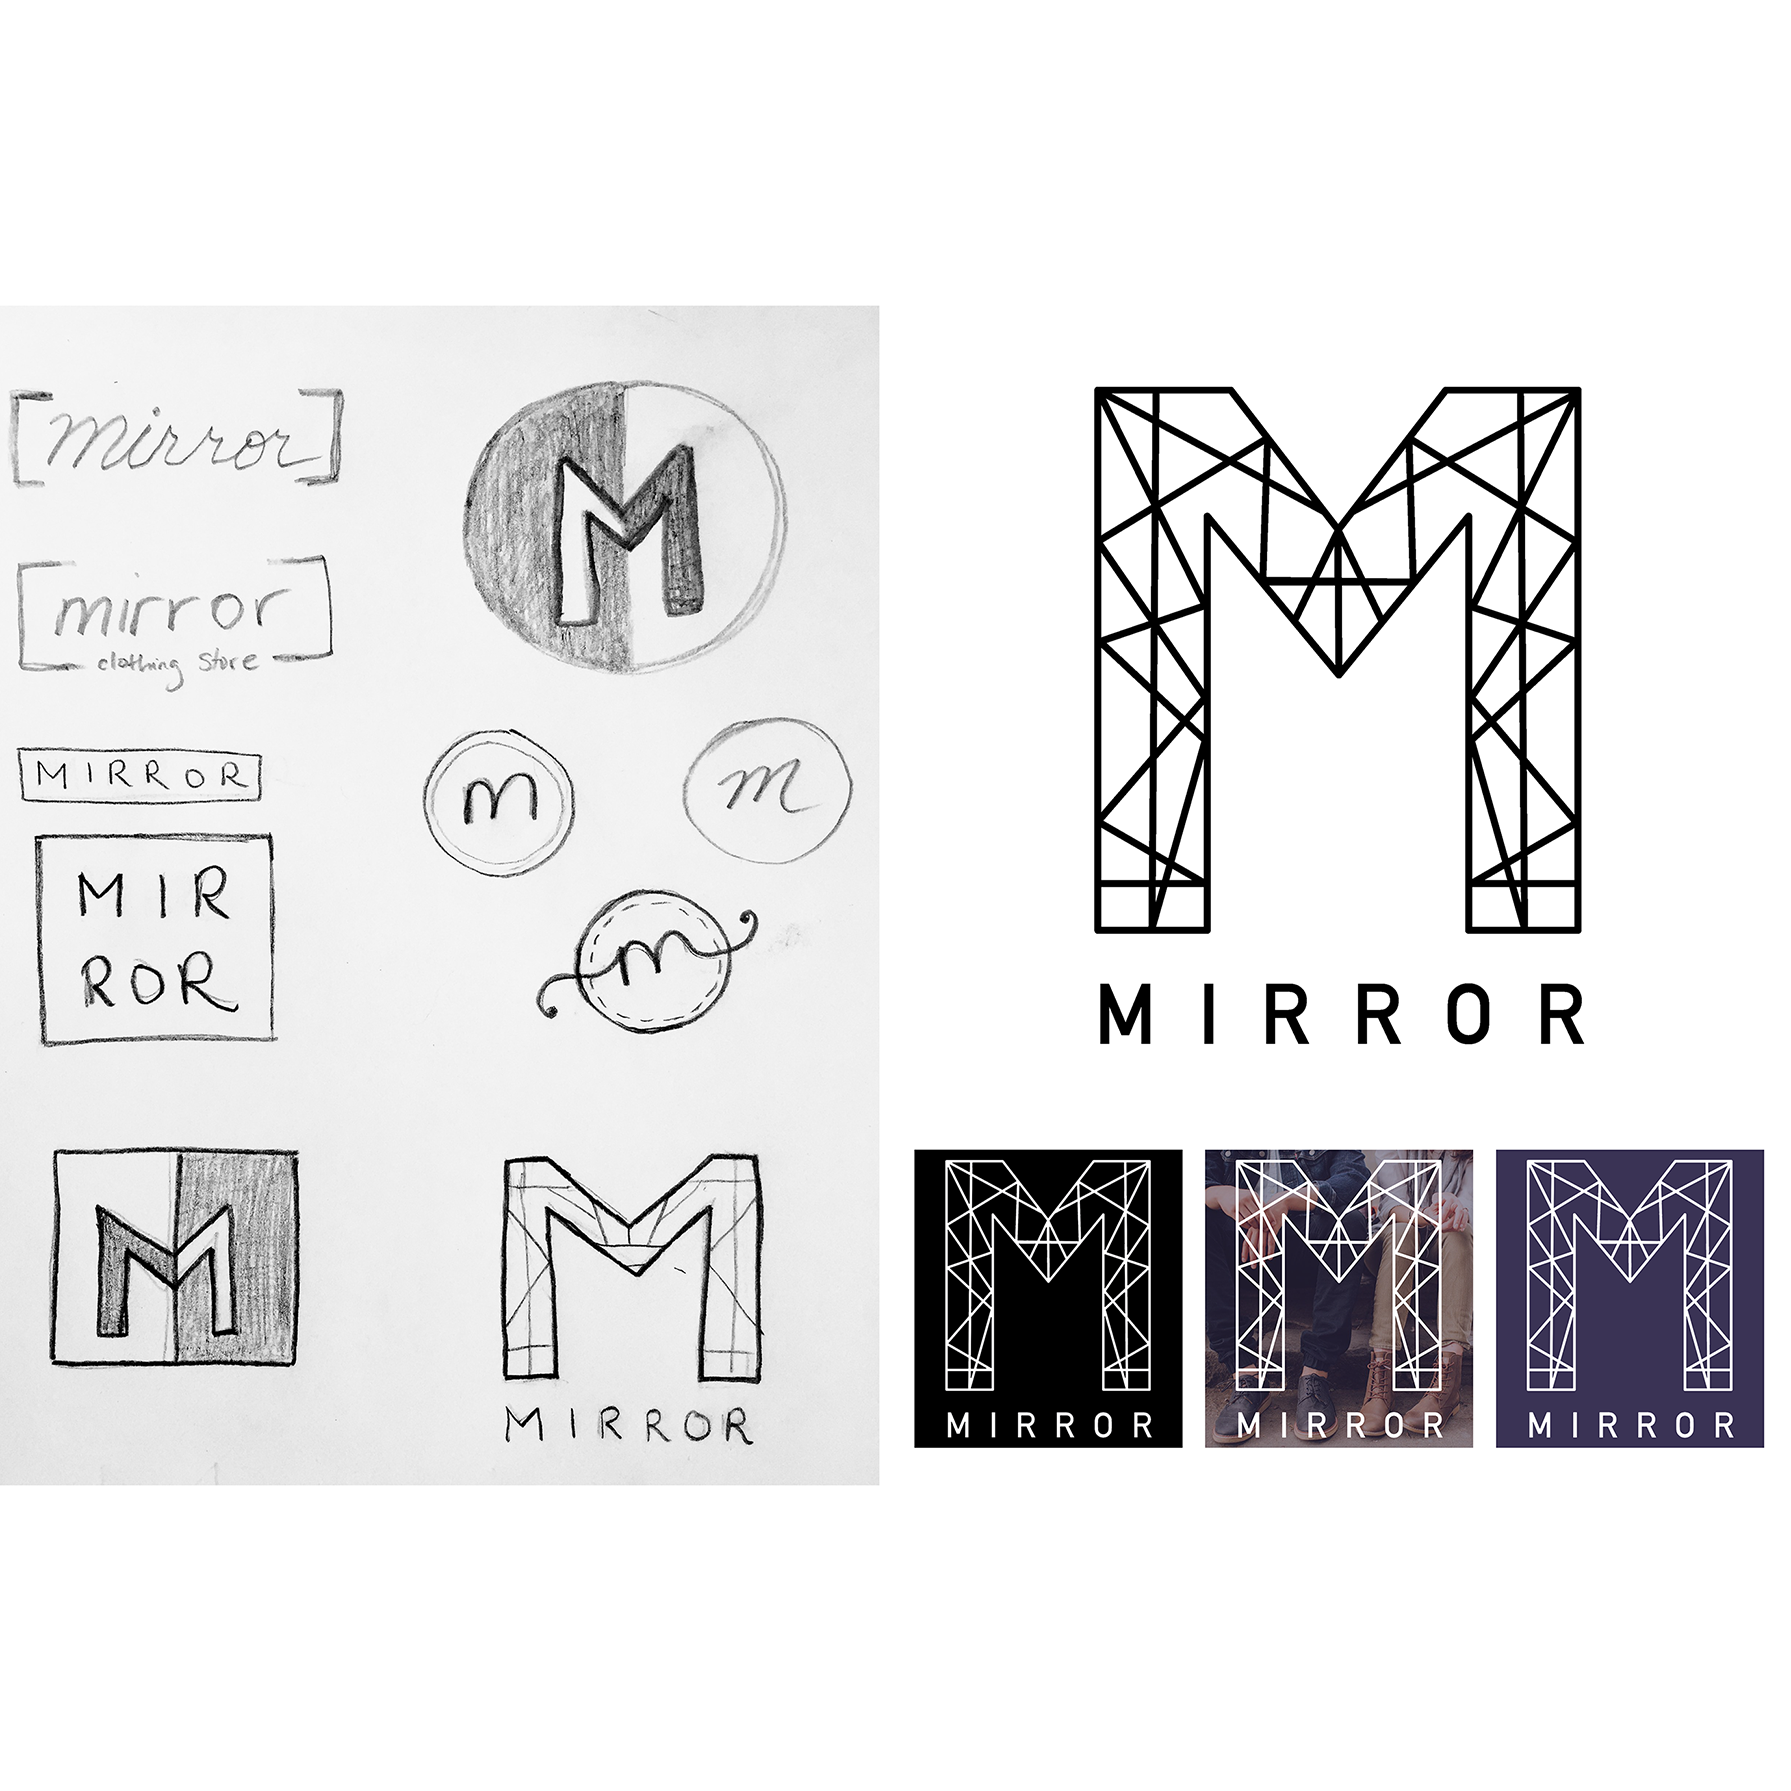 mirrorlogoprocess.png